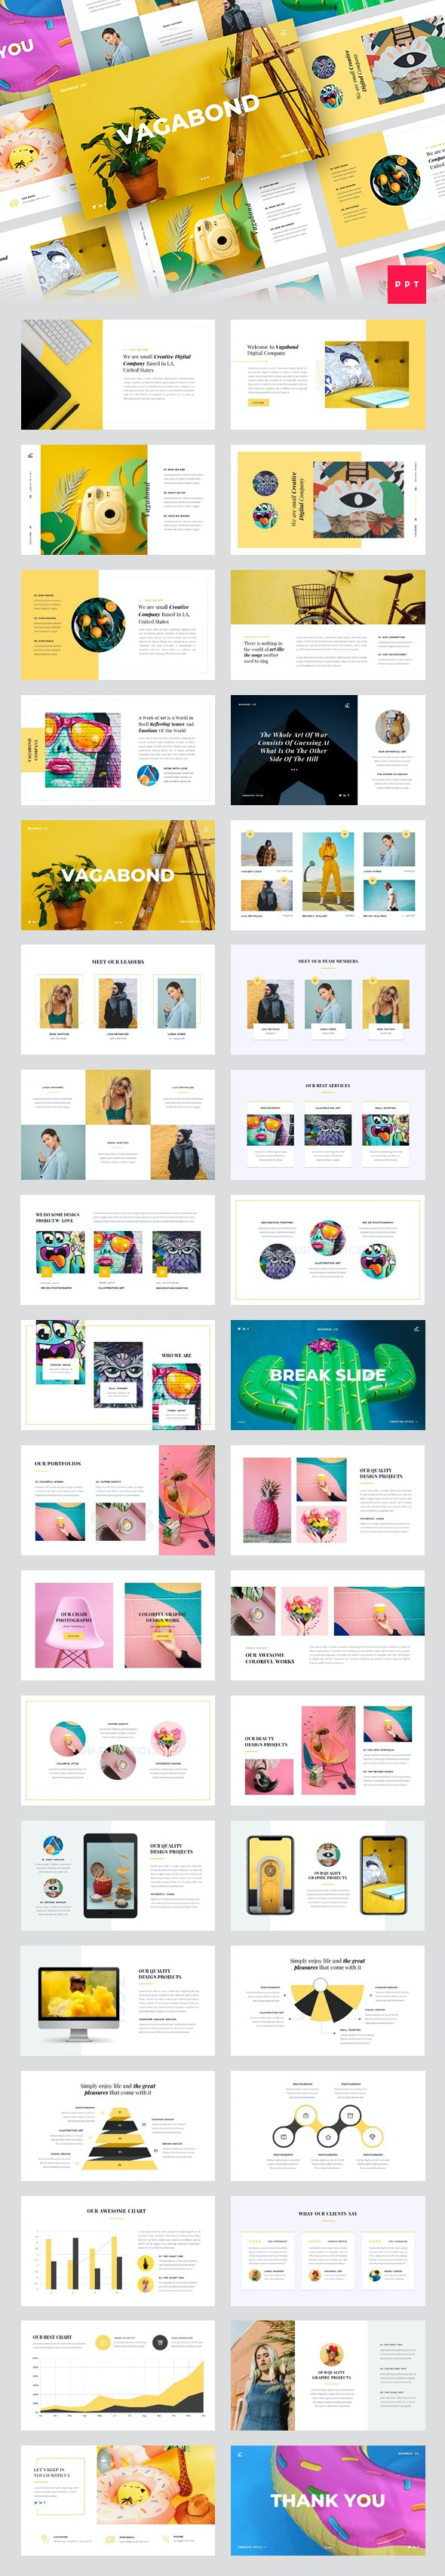 Vagabond - Creative & Business PowerPoint Template - Creative PowerPoint Templates